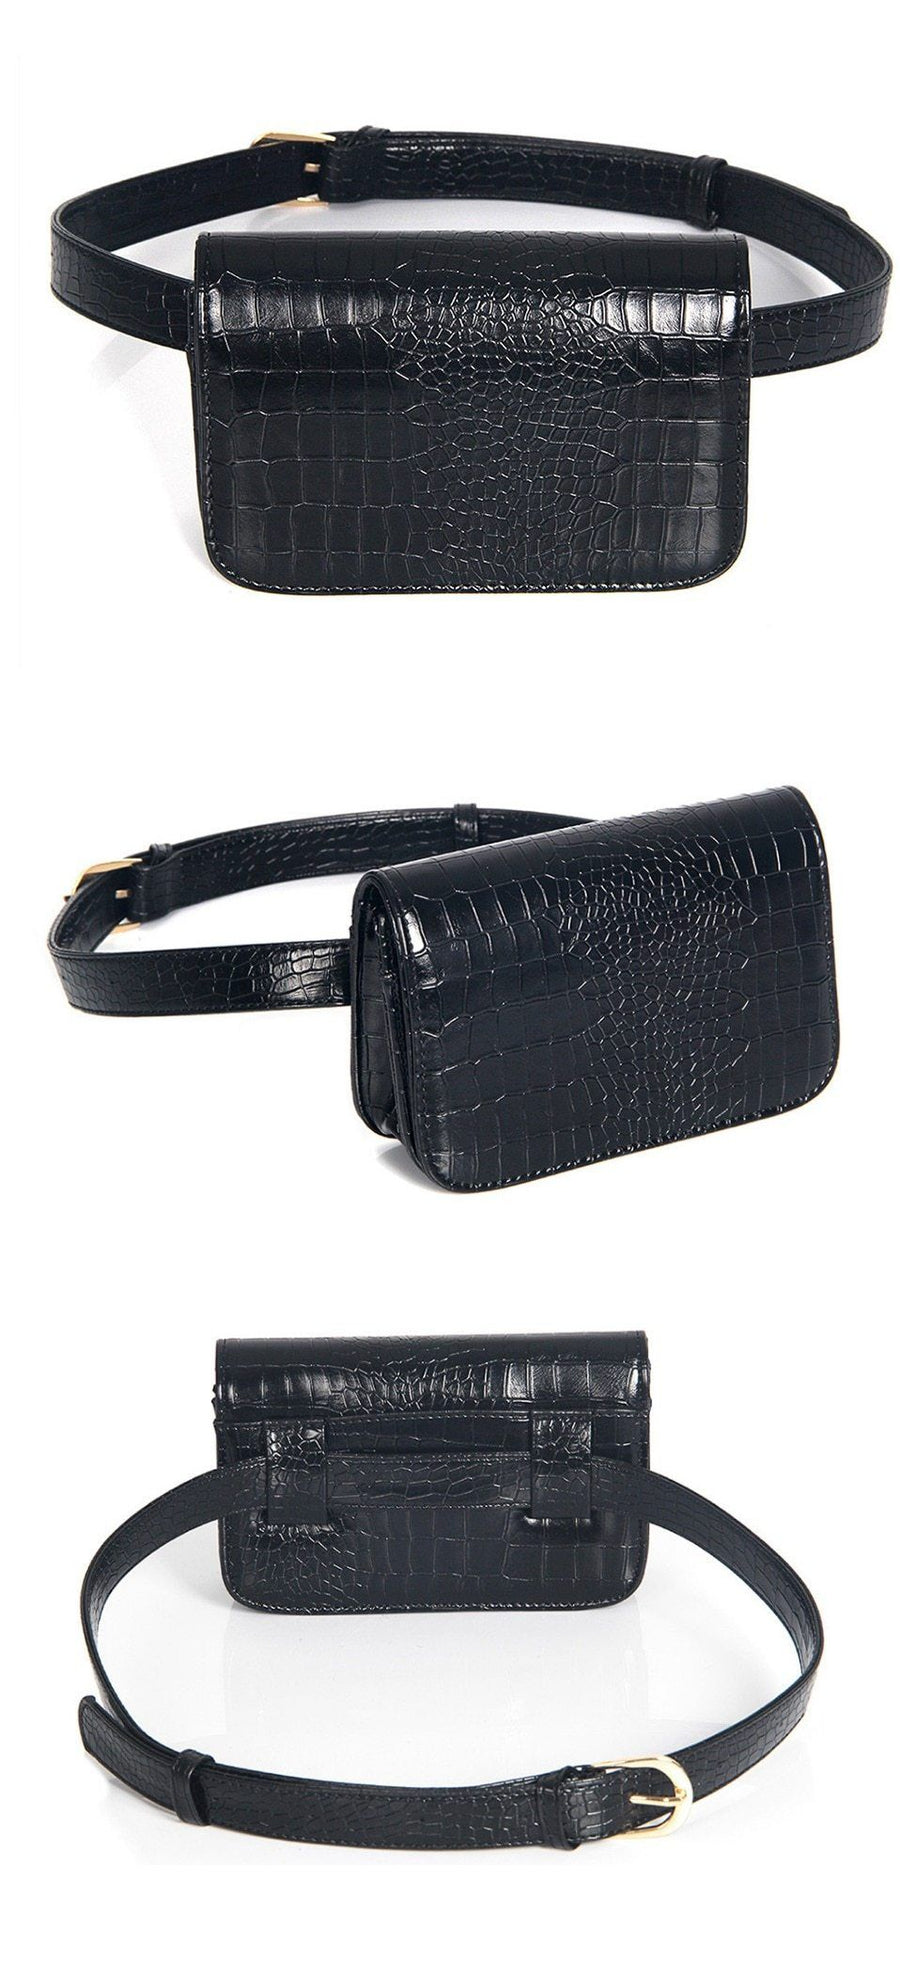 Vintage Alligator Waist Bag Waist Packs DBFashion Store